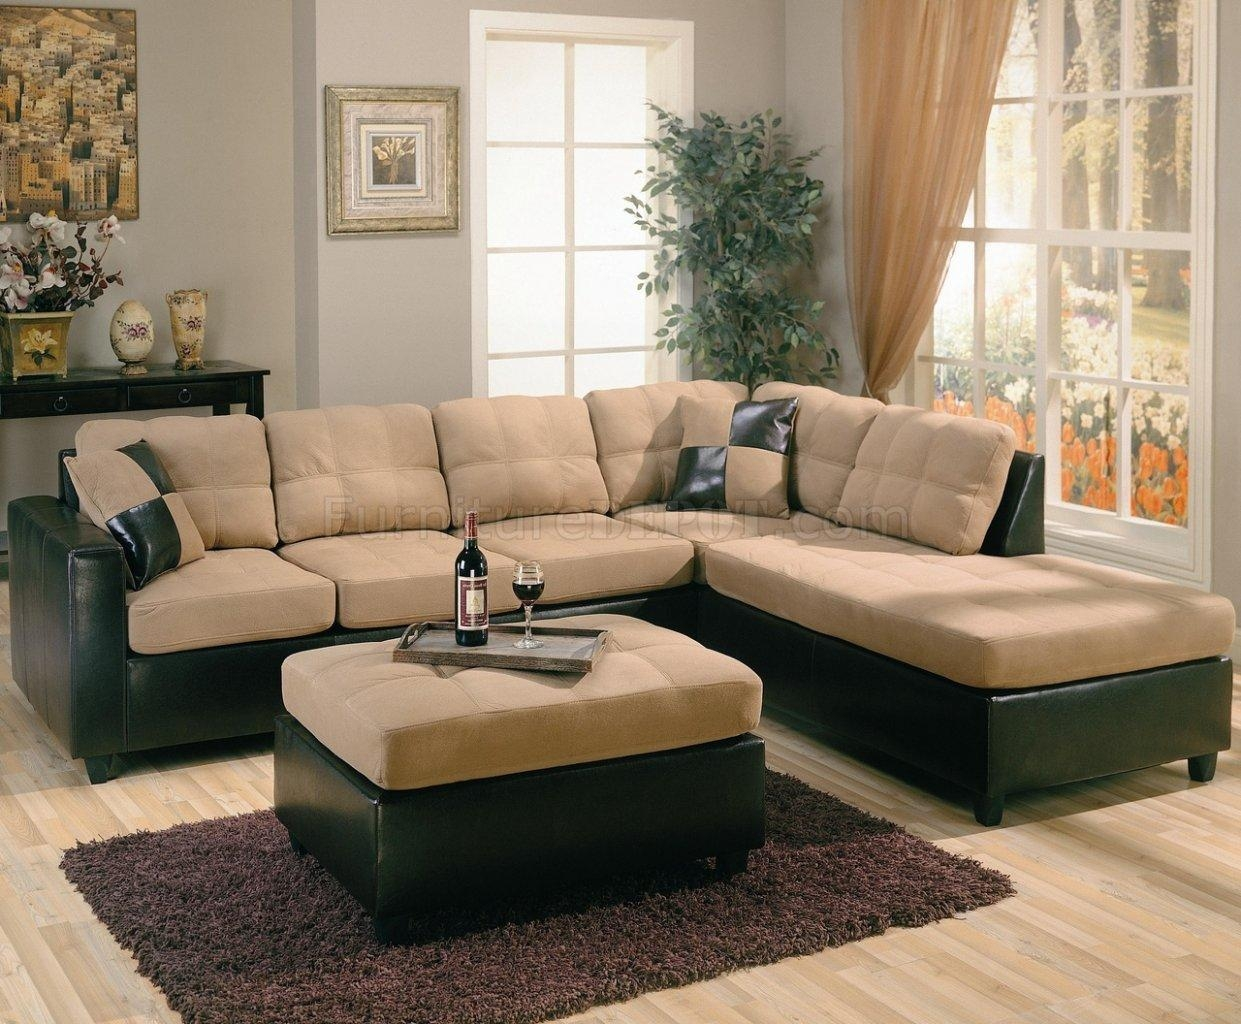 Sofas Center : Faux Leather Sectional Sofa Ashley Furniture Sofas With Regard To Ashley Faux Leather Sectional Sofas (Image 14 of 20)